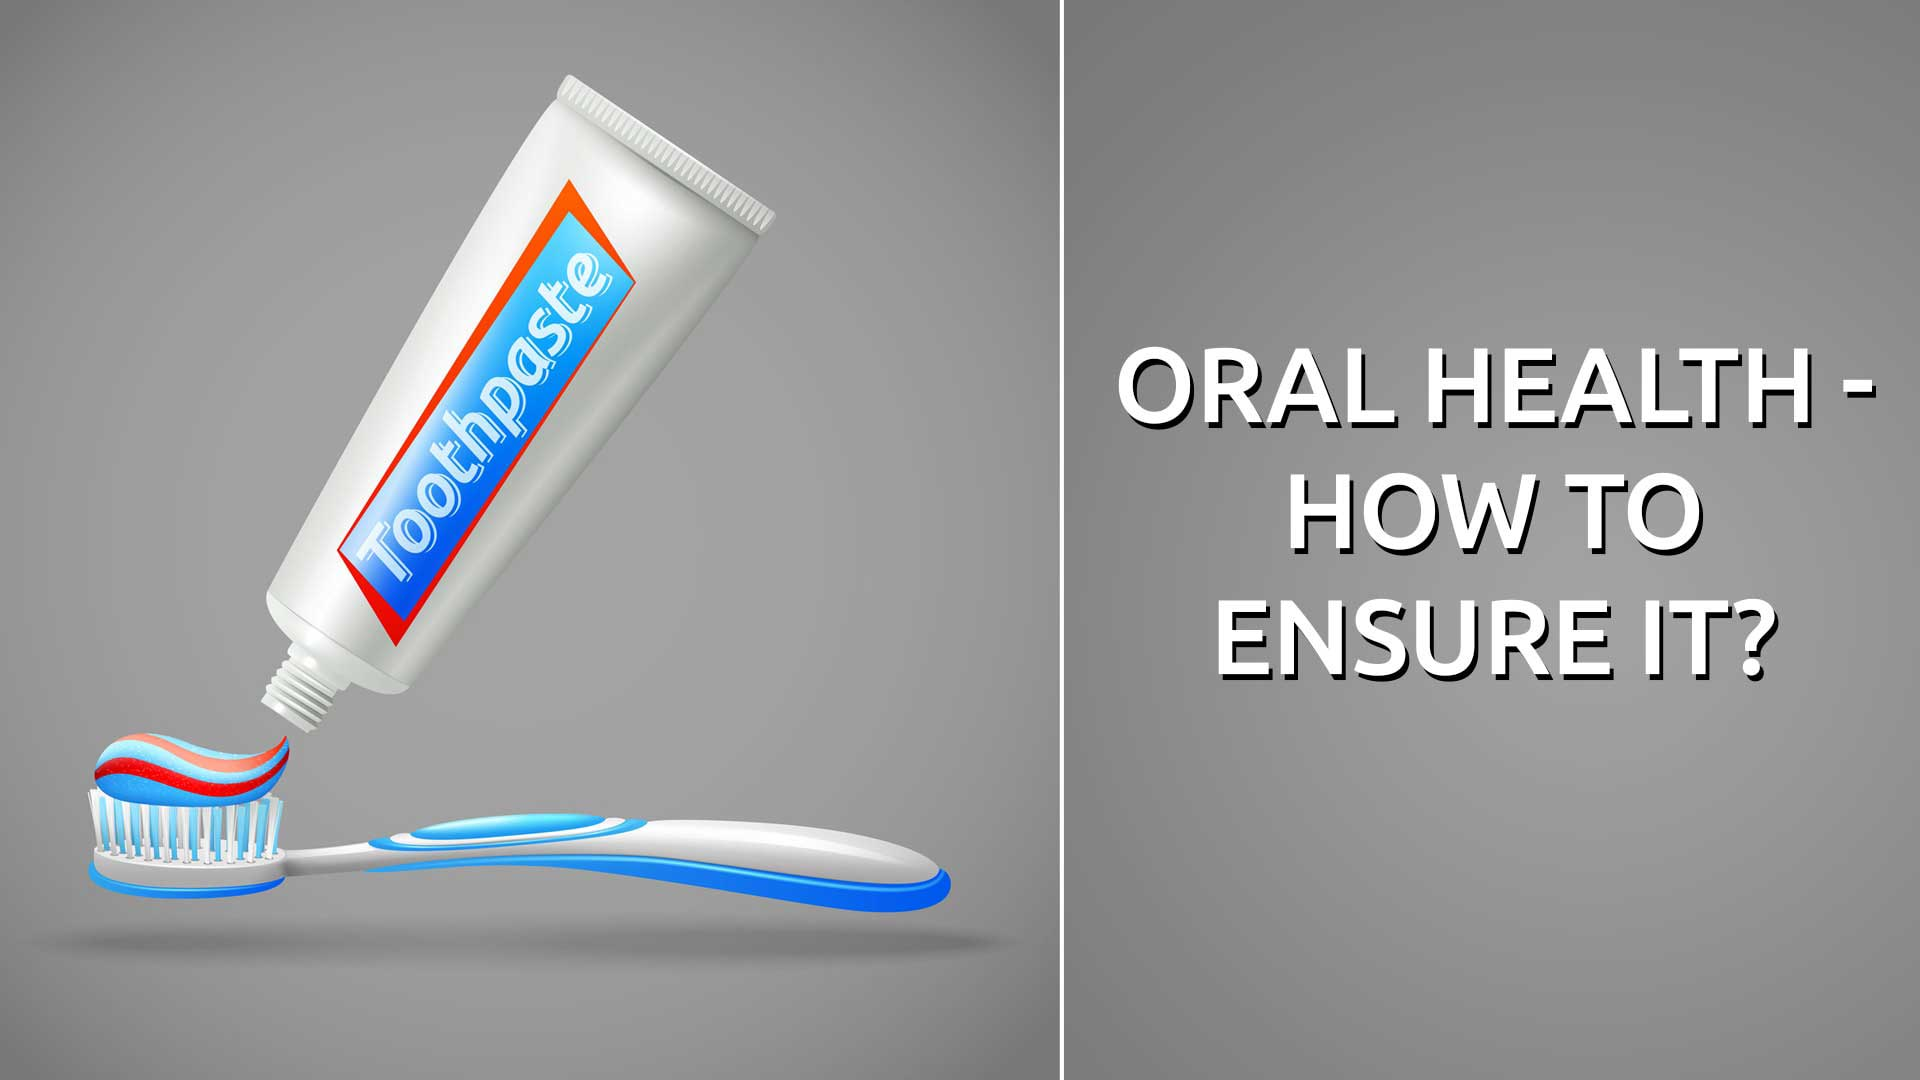 Oral Health – How To Ensure It?